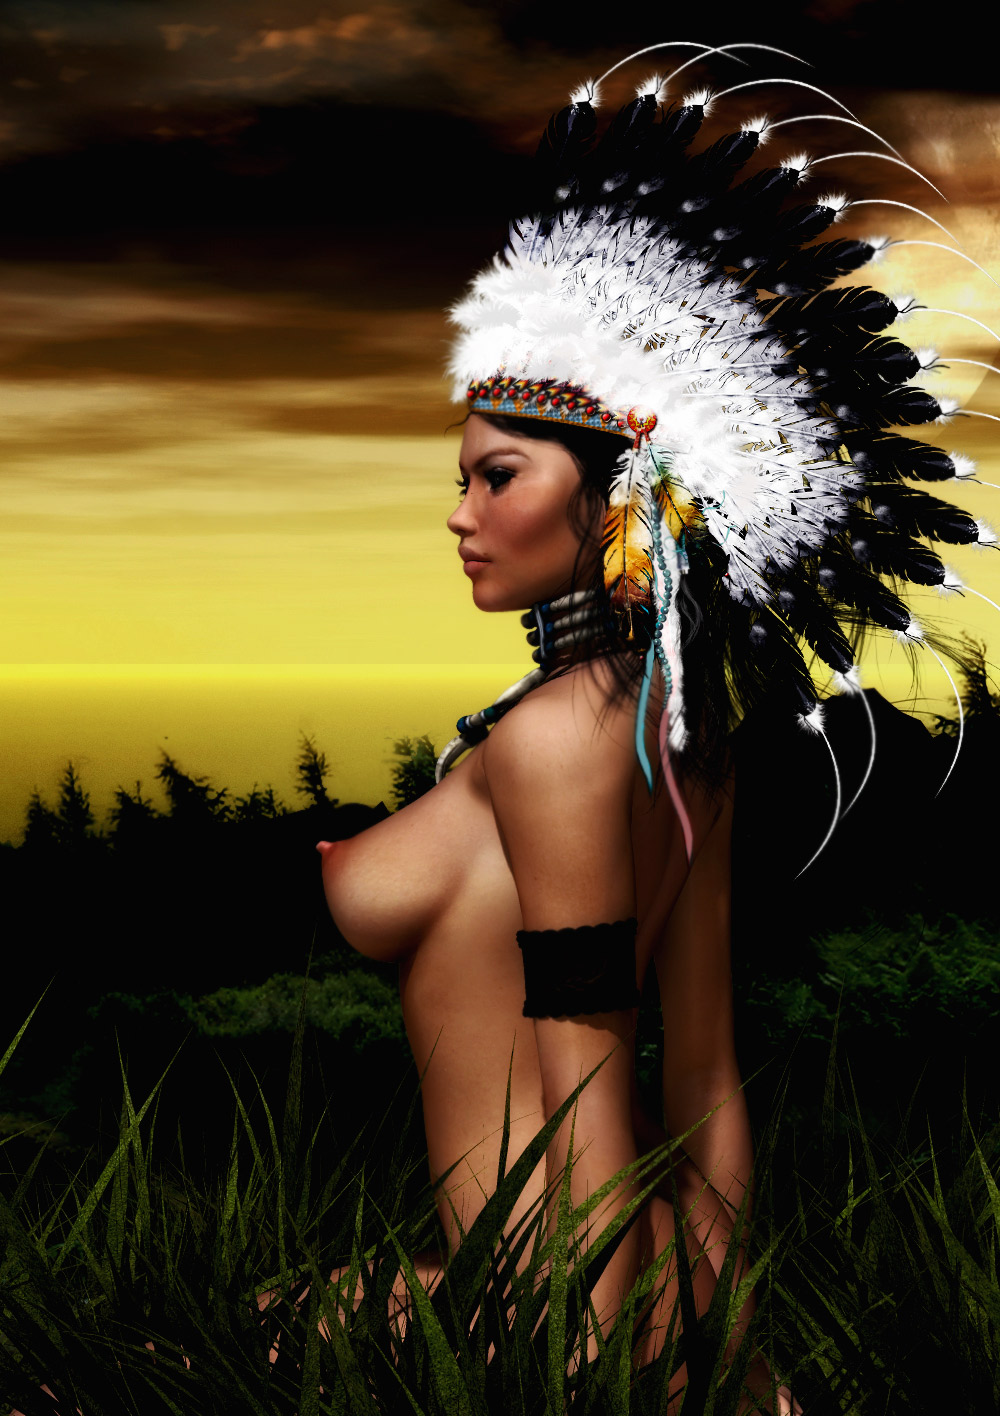 Fat native american naked 4